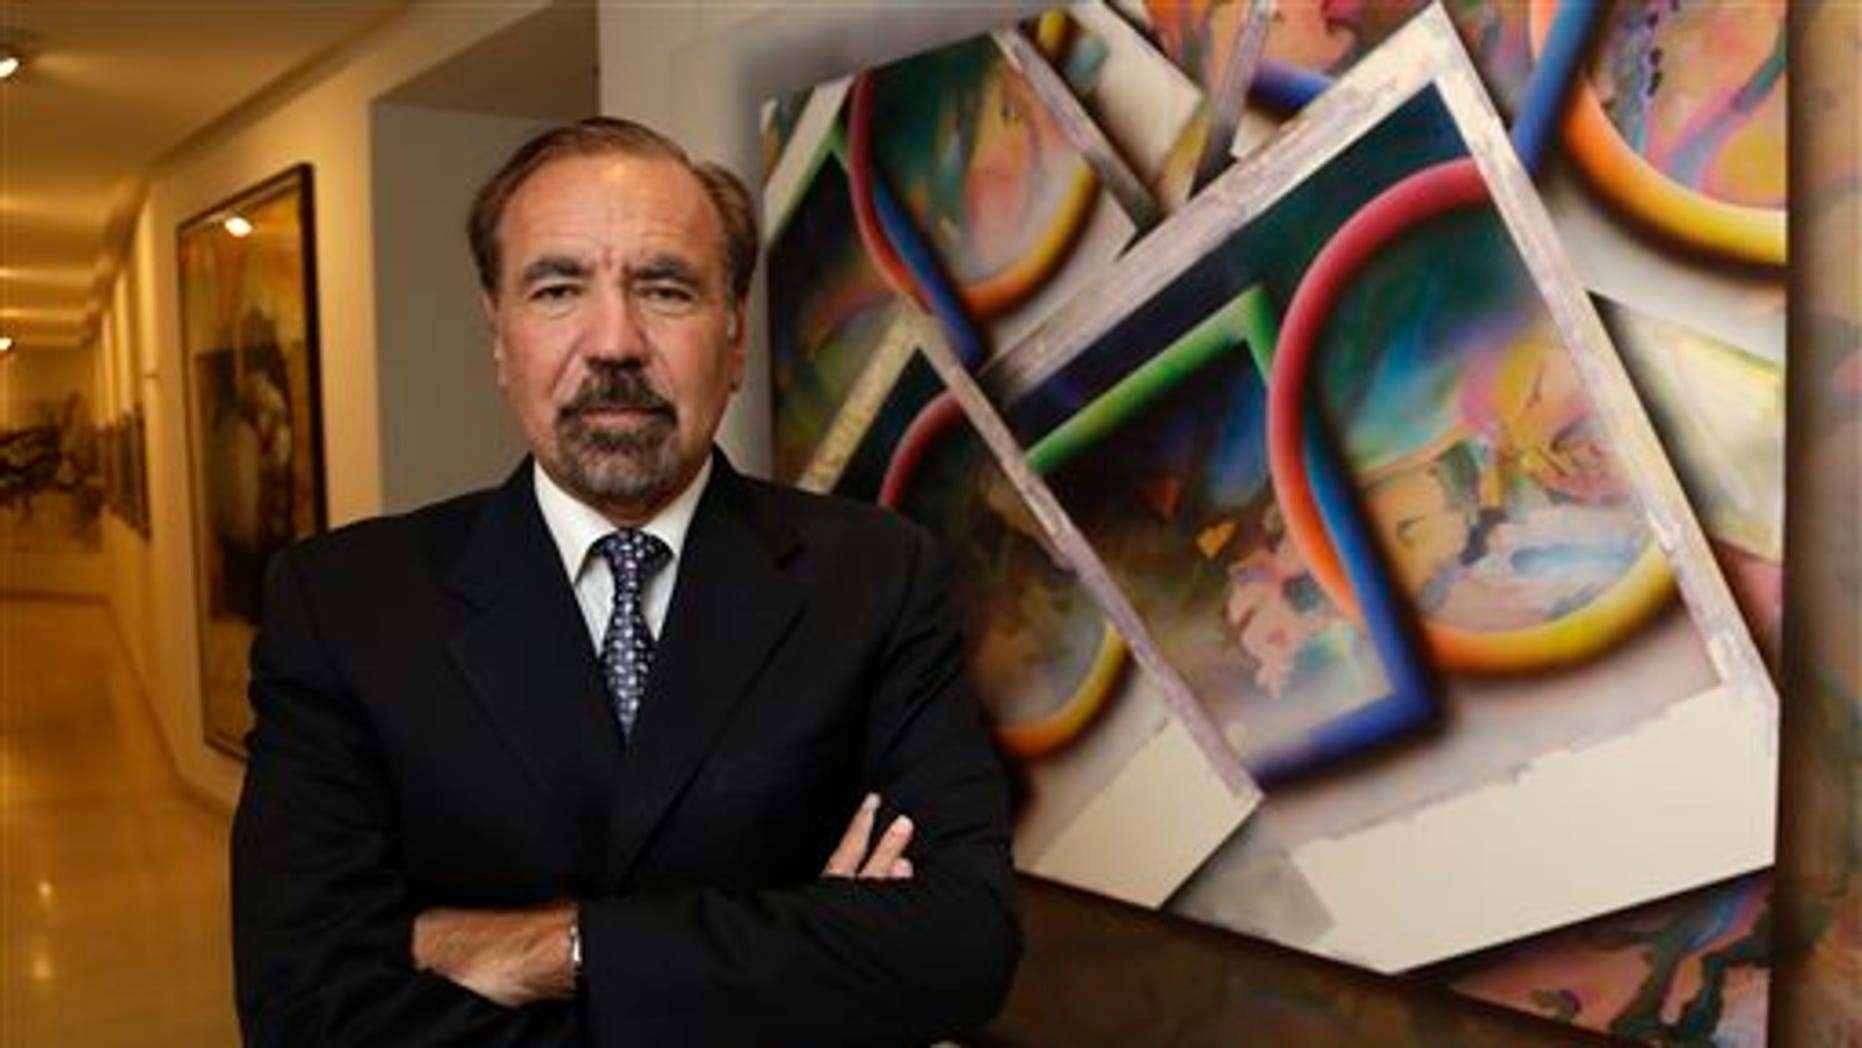 FILE- In this In this Dec. 11, 2013 file photo, developer and art collector Jorge Perez, poses for a photograph in his office at the Related Group, in Miami. Perez is one of Floridas powerful Cuban-American business leaders. He wants to soften the U.S. governments longtime economic embargo against Cubas communist government. (AP Photo/Lynne Sladky, File)